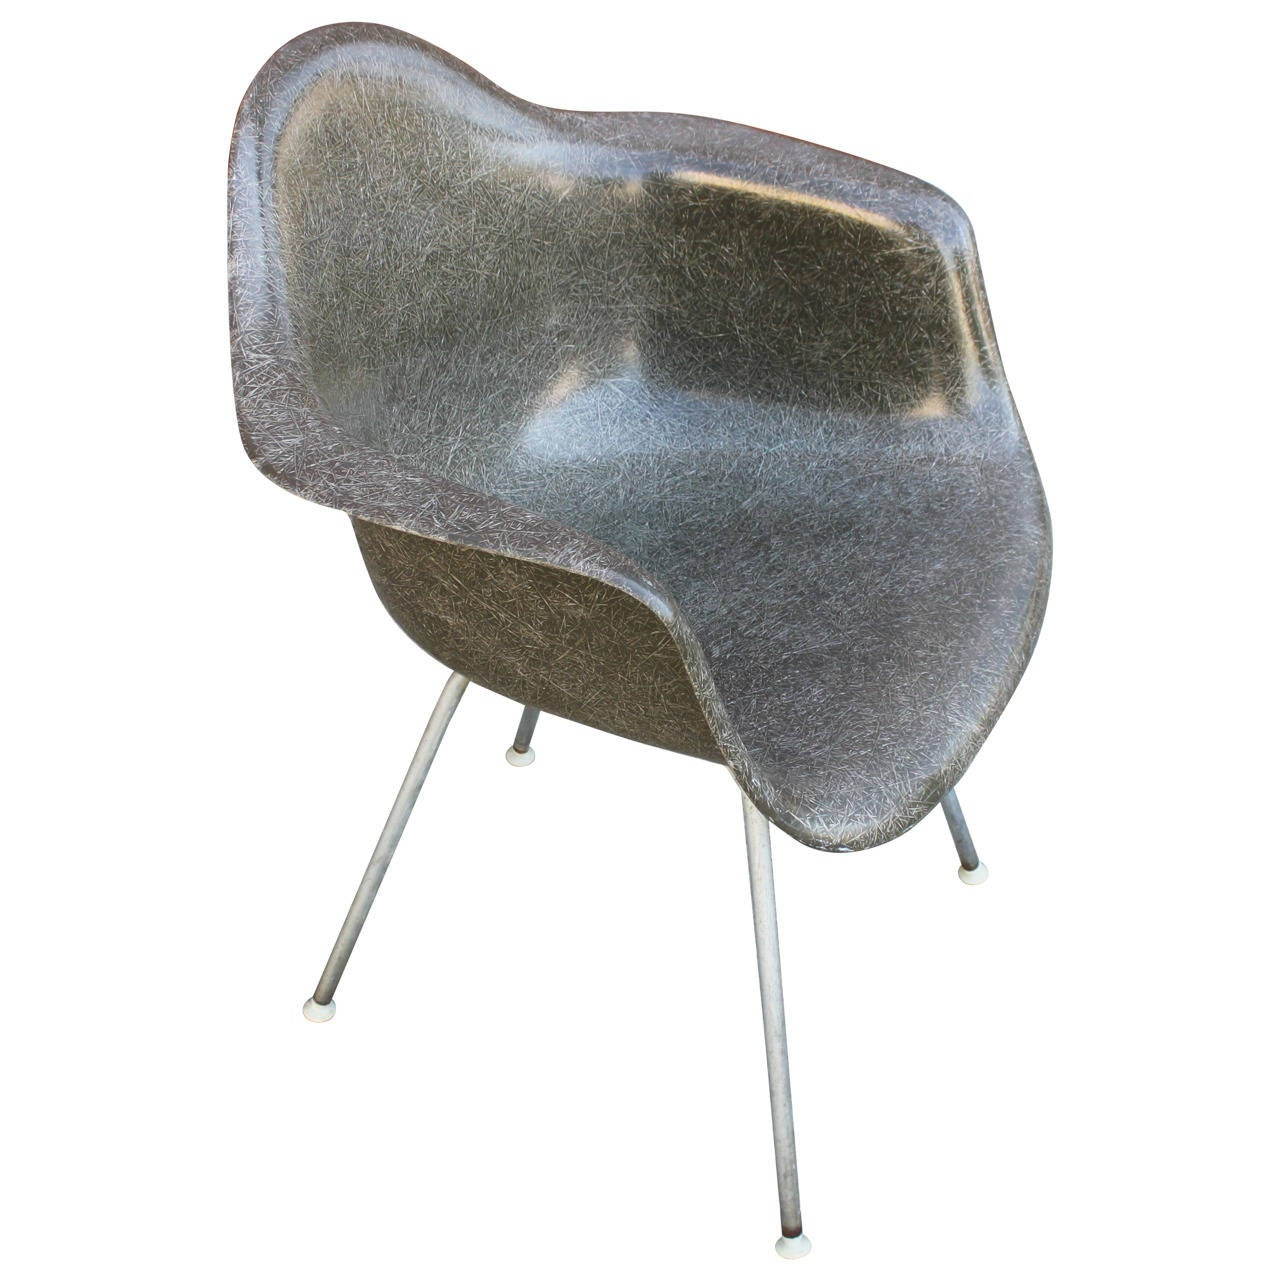 eames shell armchair in elephant grey for sale at 1stdibs. Black Bedroom Furniture Sets. Home Design Ideas